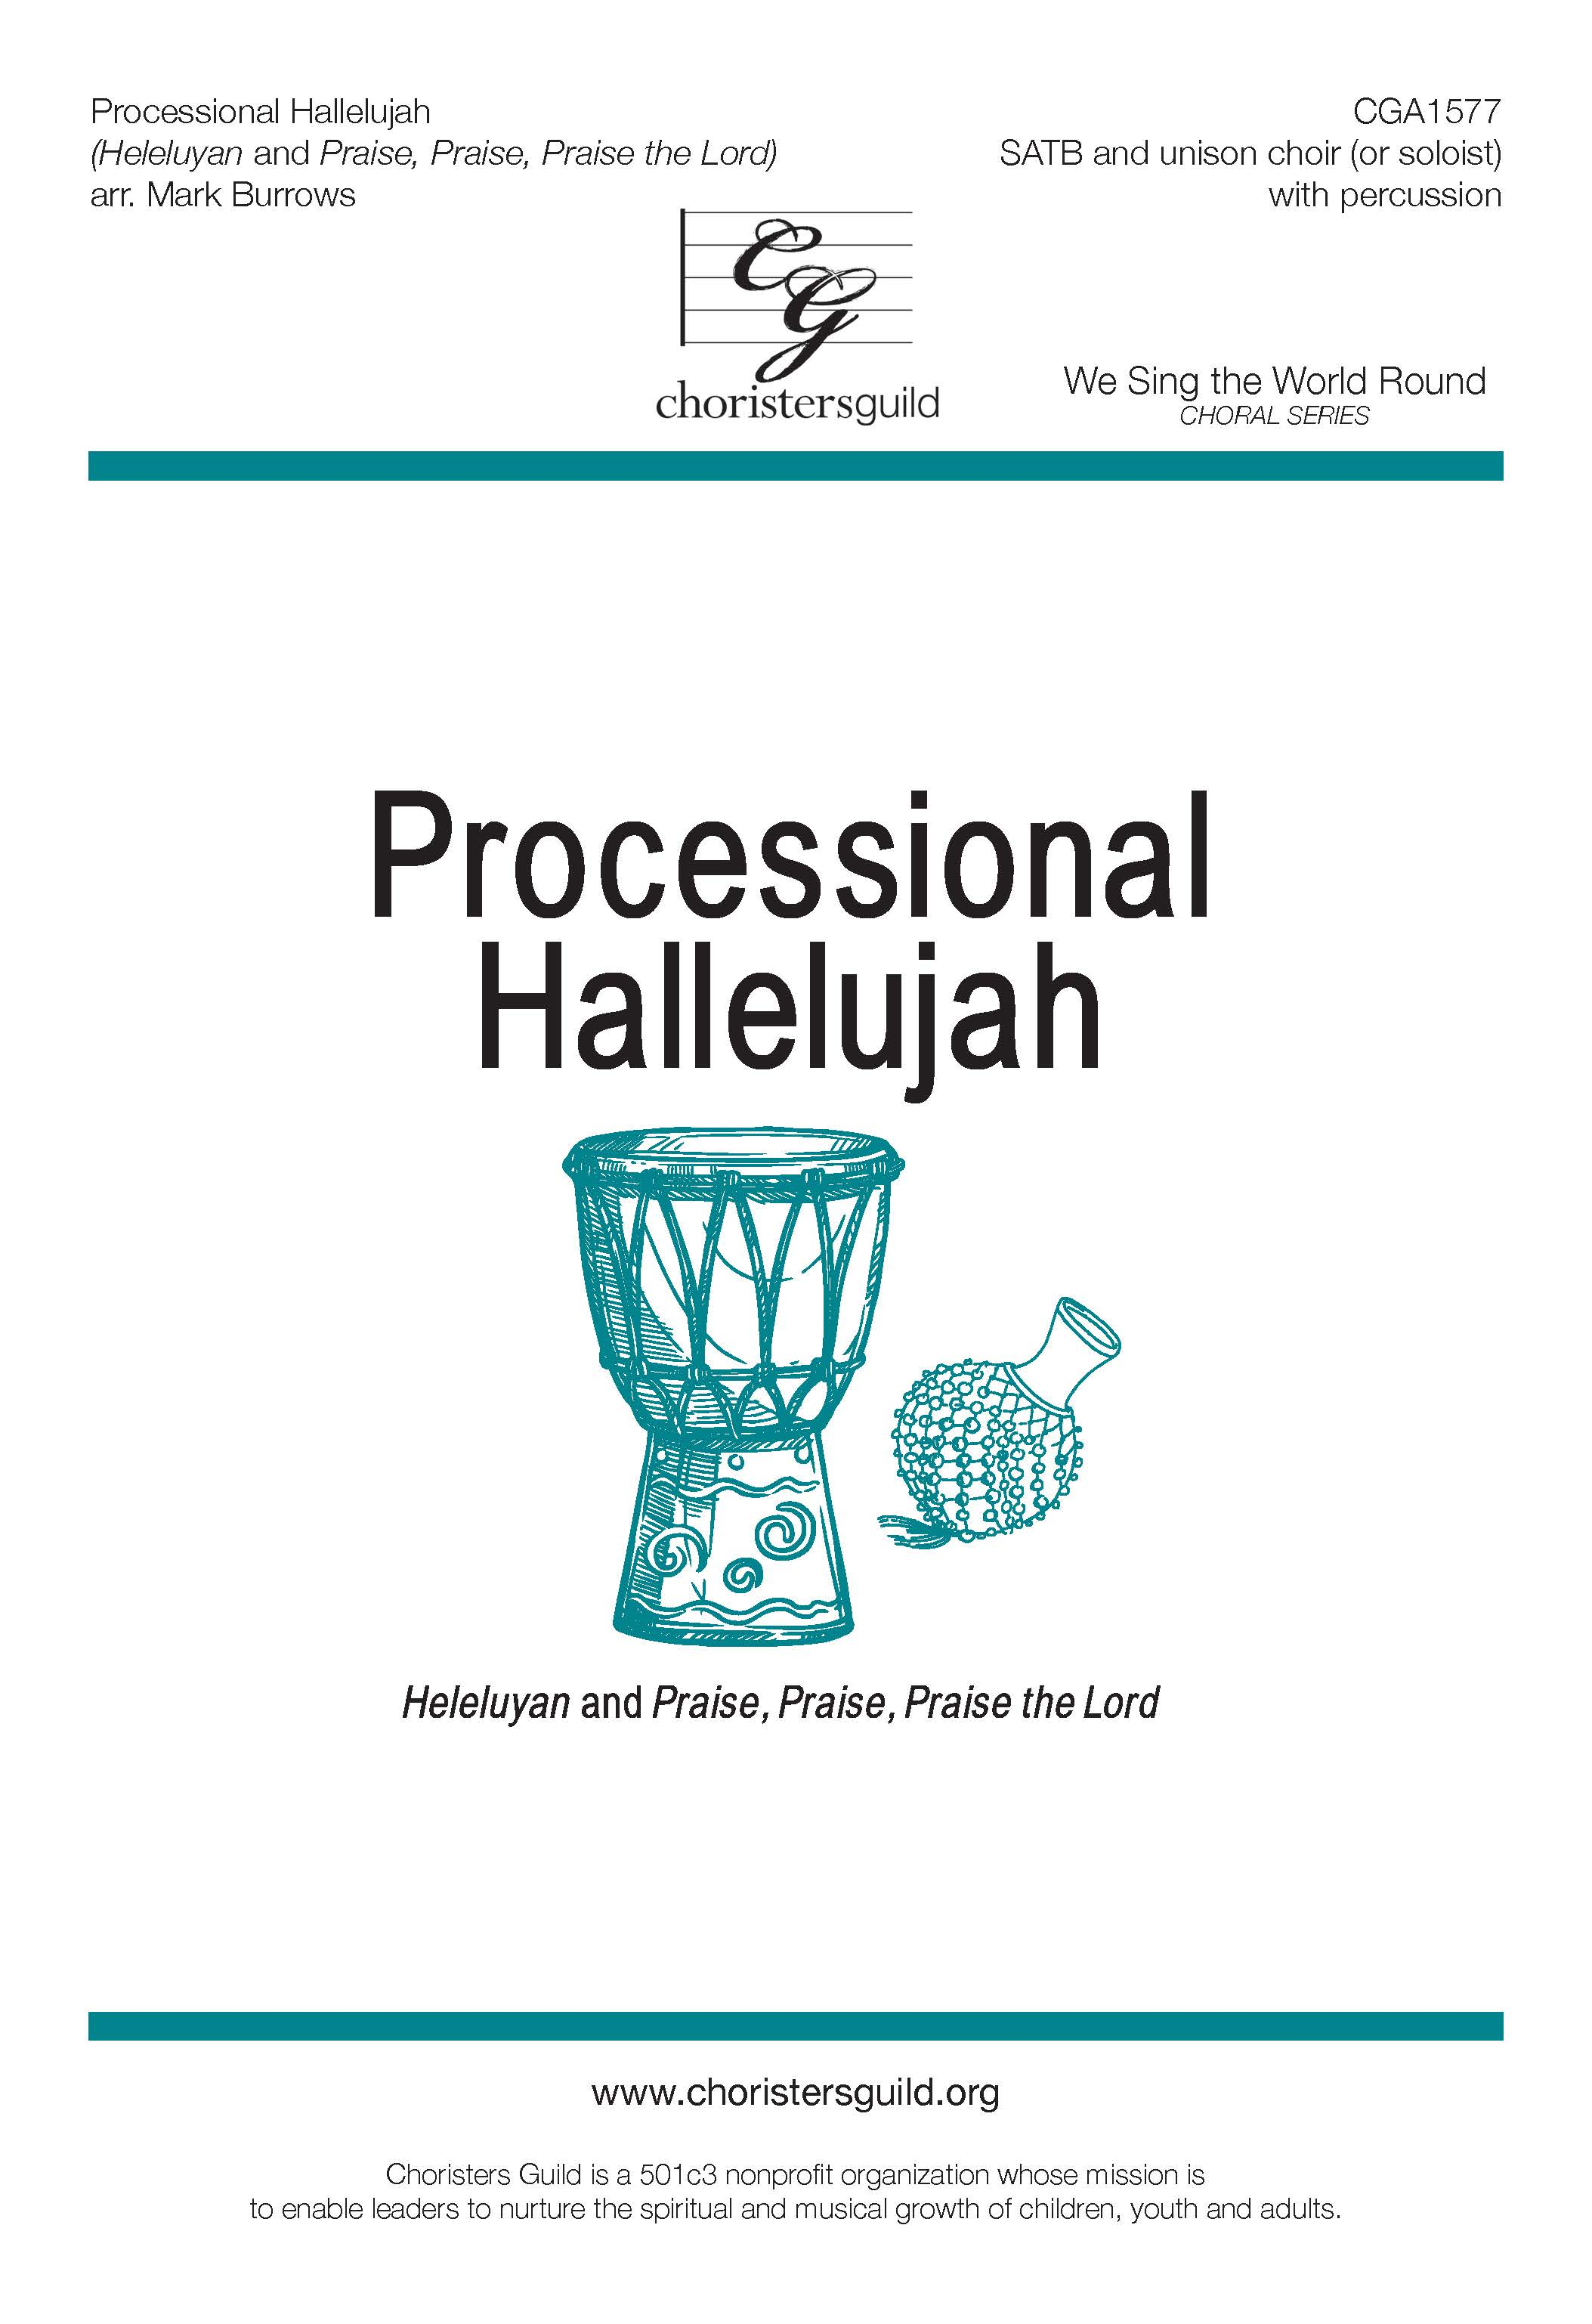 Processional Hallelujah (Heleluyan and Praise, Praise, Praise the Lor